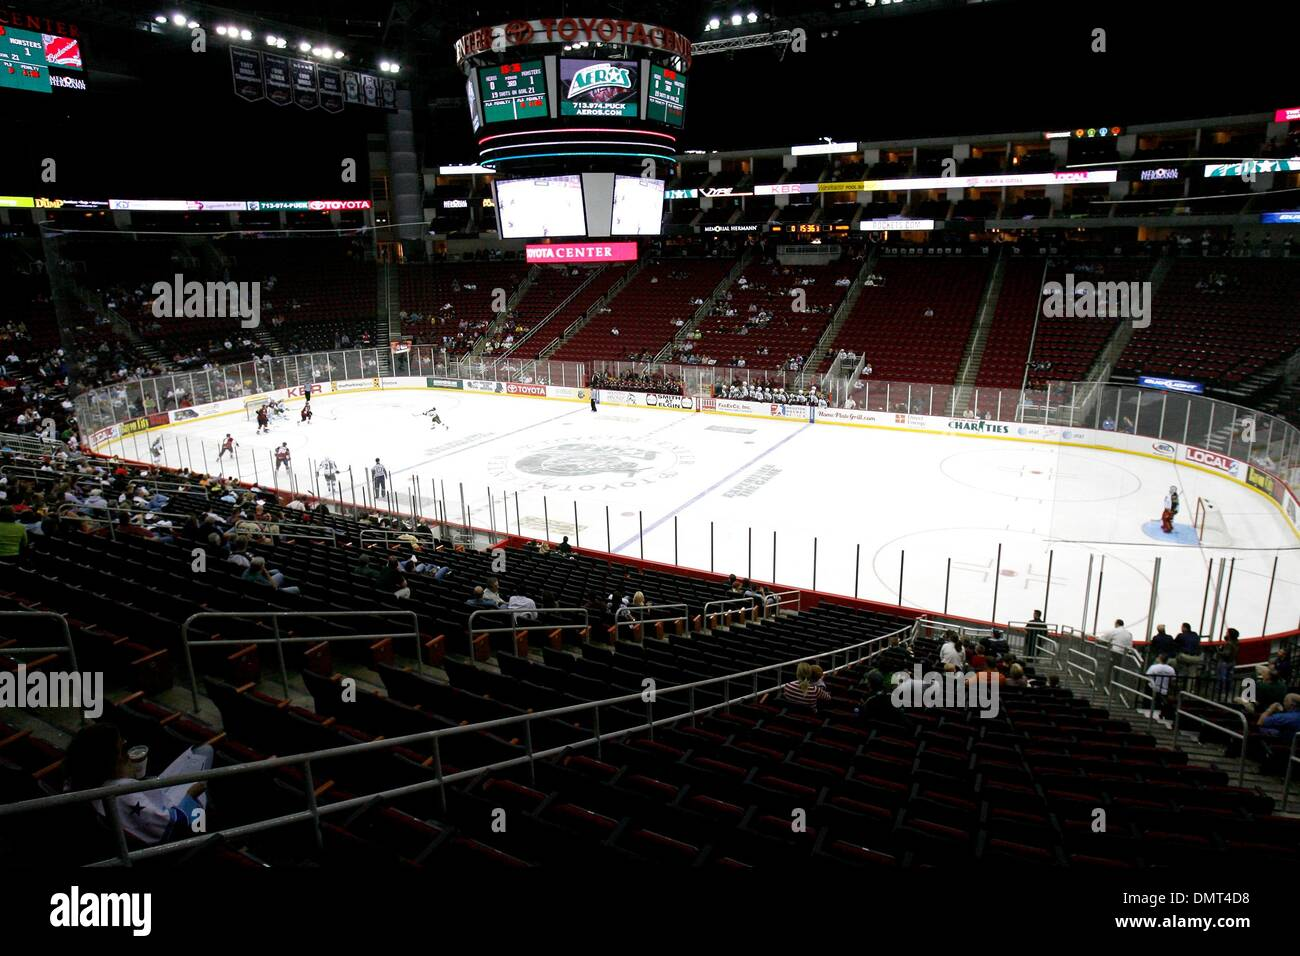 the toyota center during a houston aeros hockey game. the lake erie